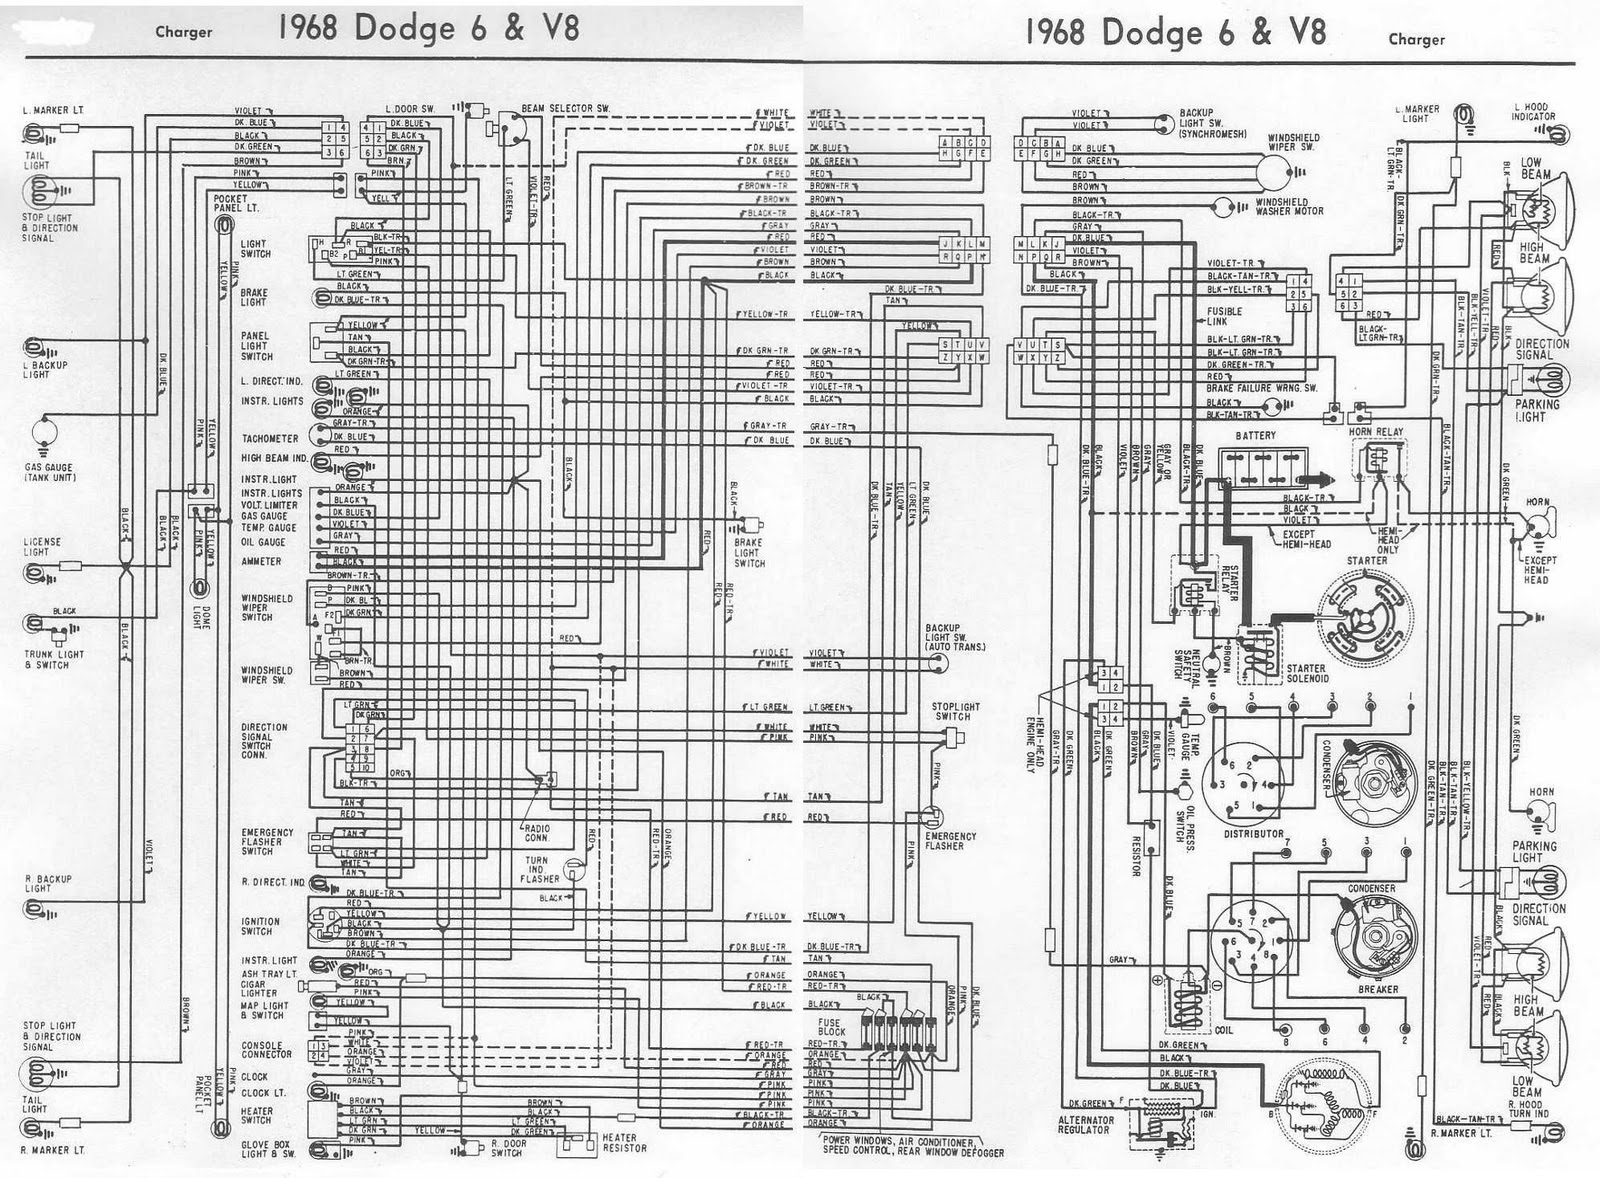 small resolution of dodge charger 1968 6 and v8 complete electrical wiring diagram all about wiring diagrams 1967 chevy impala wiring diagram dodge ram alternator wiring